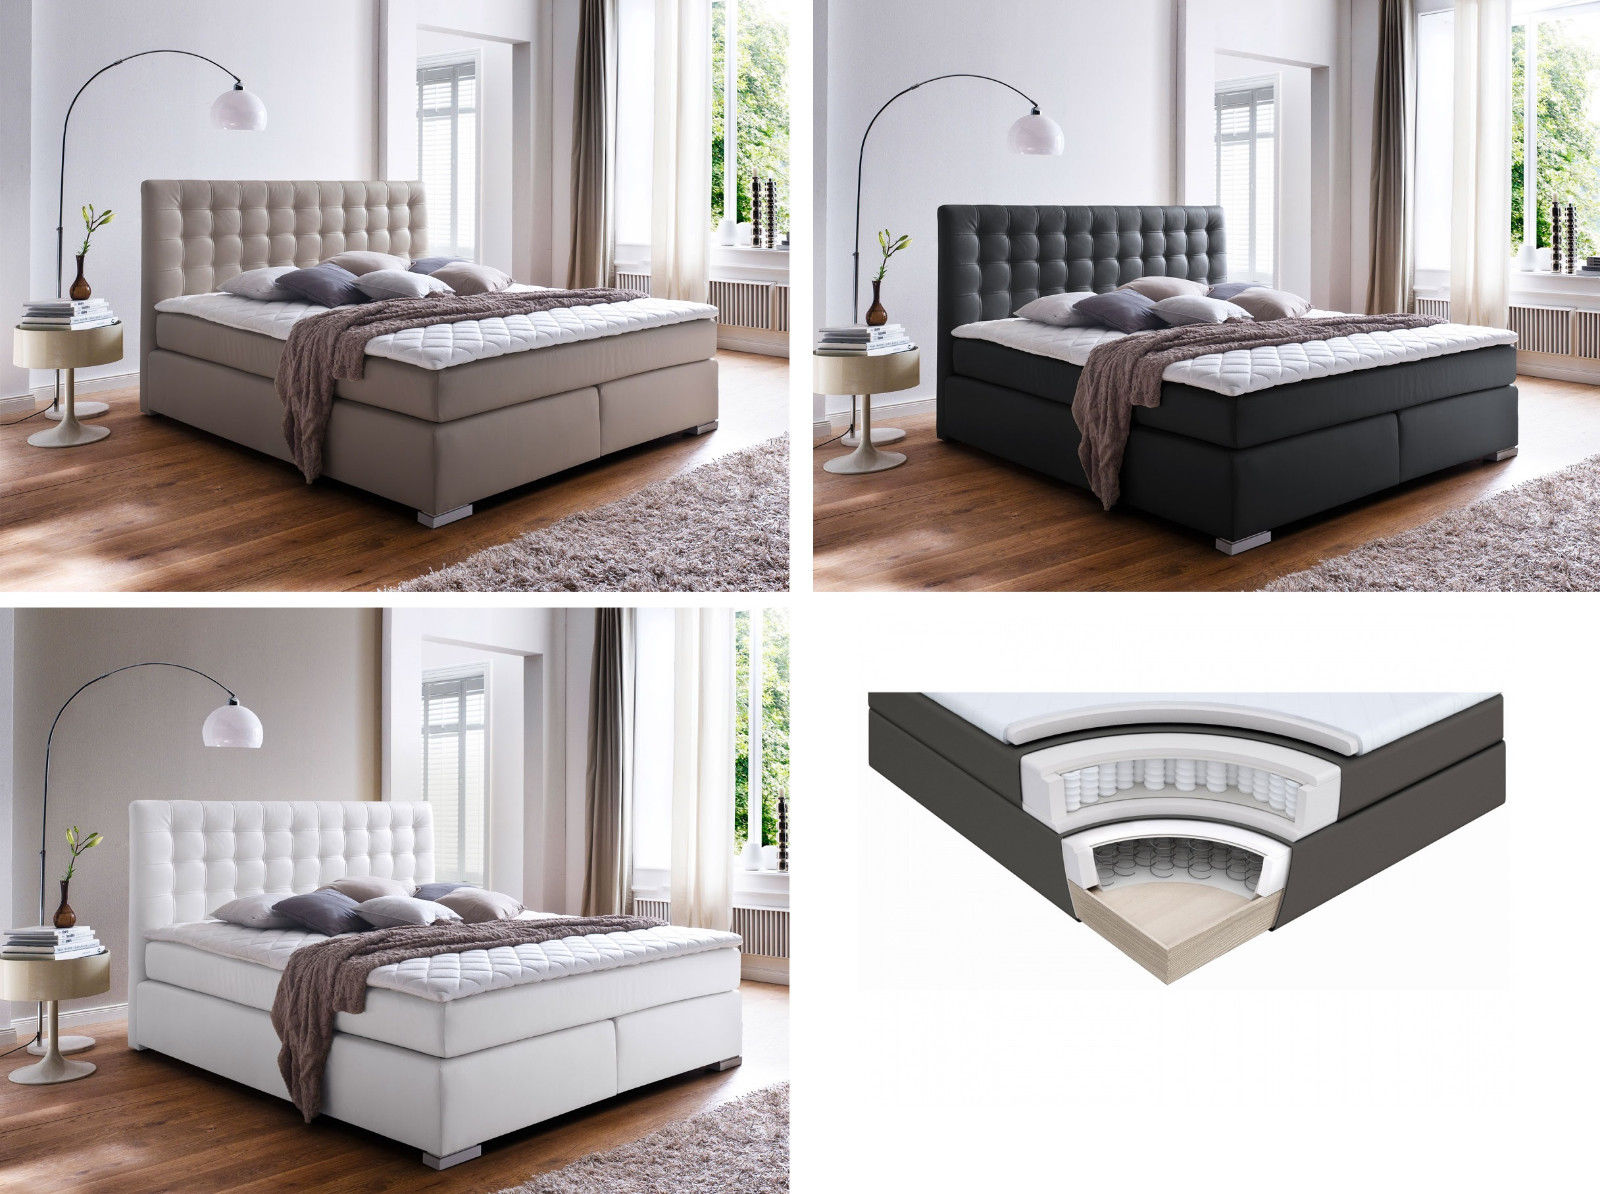 boxspringbett boxspring boxspringbetten design bett hotelbett kunstleder isabell retro stuhl. Black Bedroom Furniture Sets. Home Design Ideas